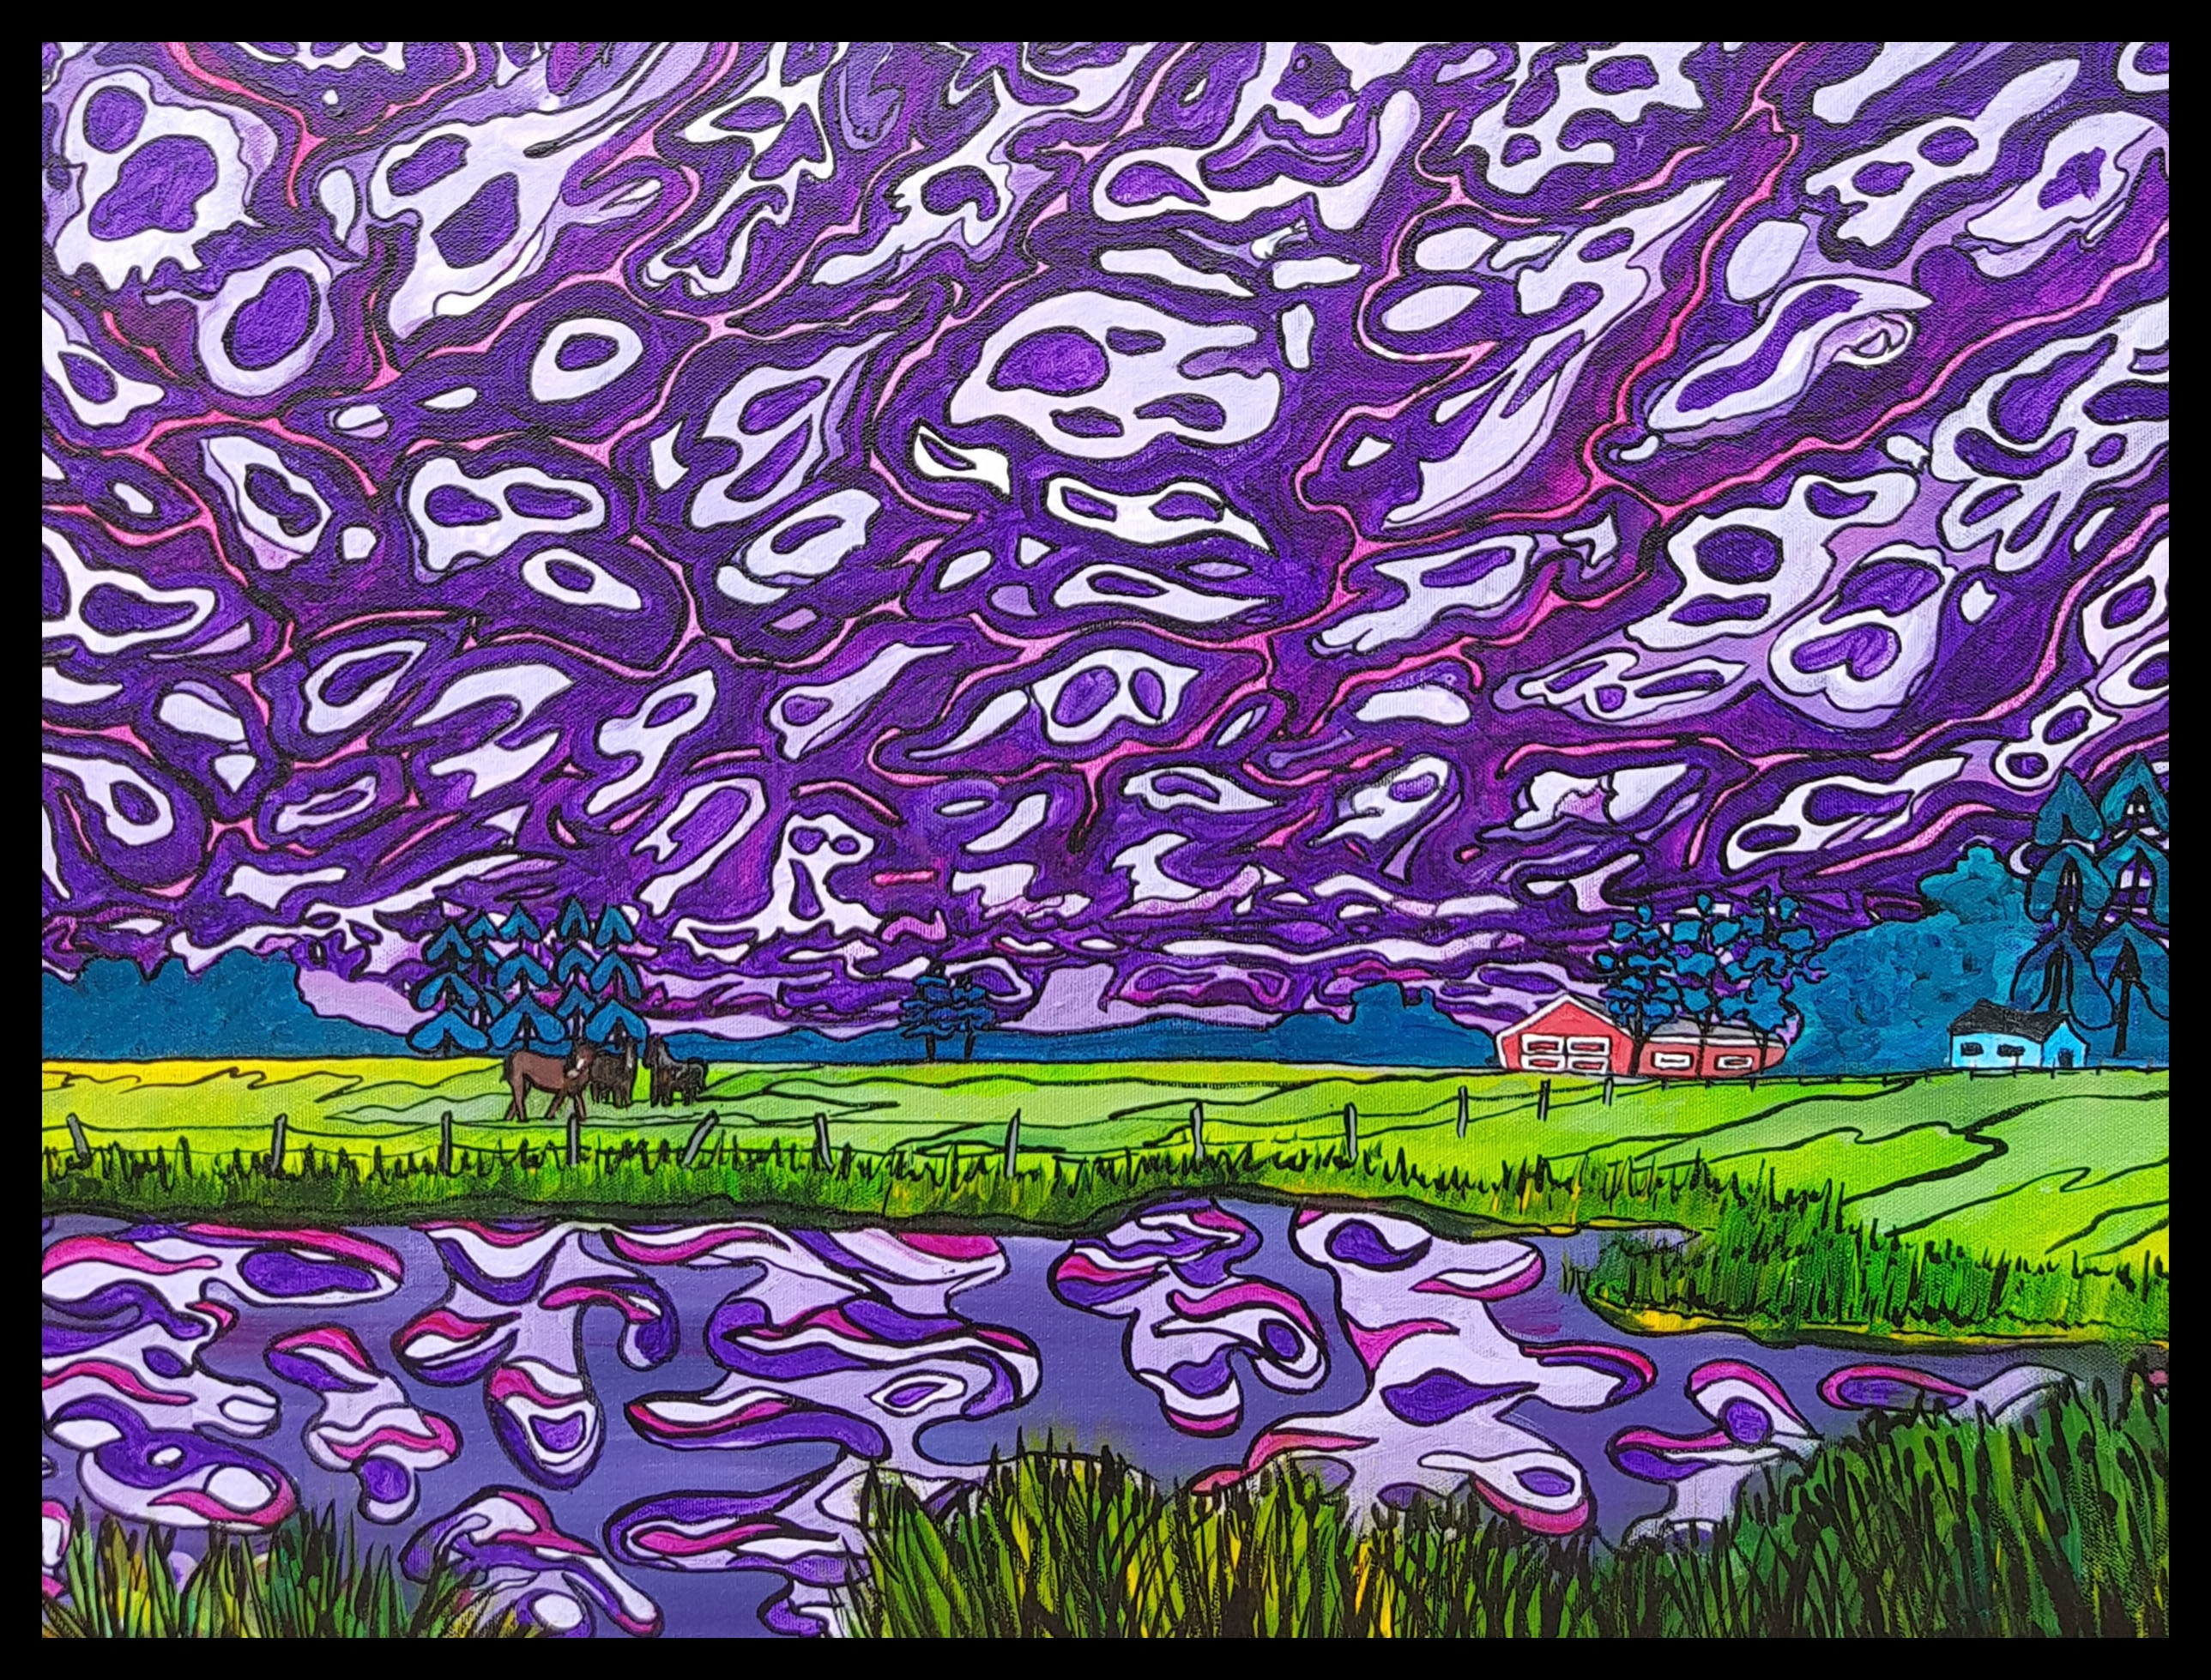 """Prairie Rhapsody"" [2018] Image: 24"" x 18"" Framed: 25.5"" x 19.5"" Acrylic on canvas Commissioned - SOLD"